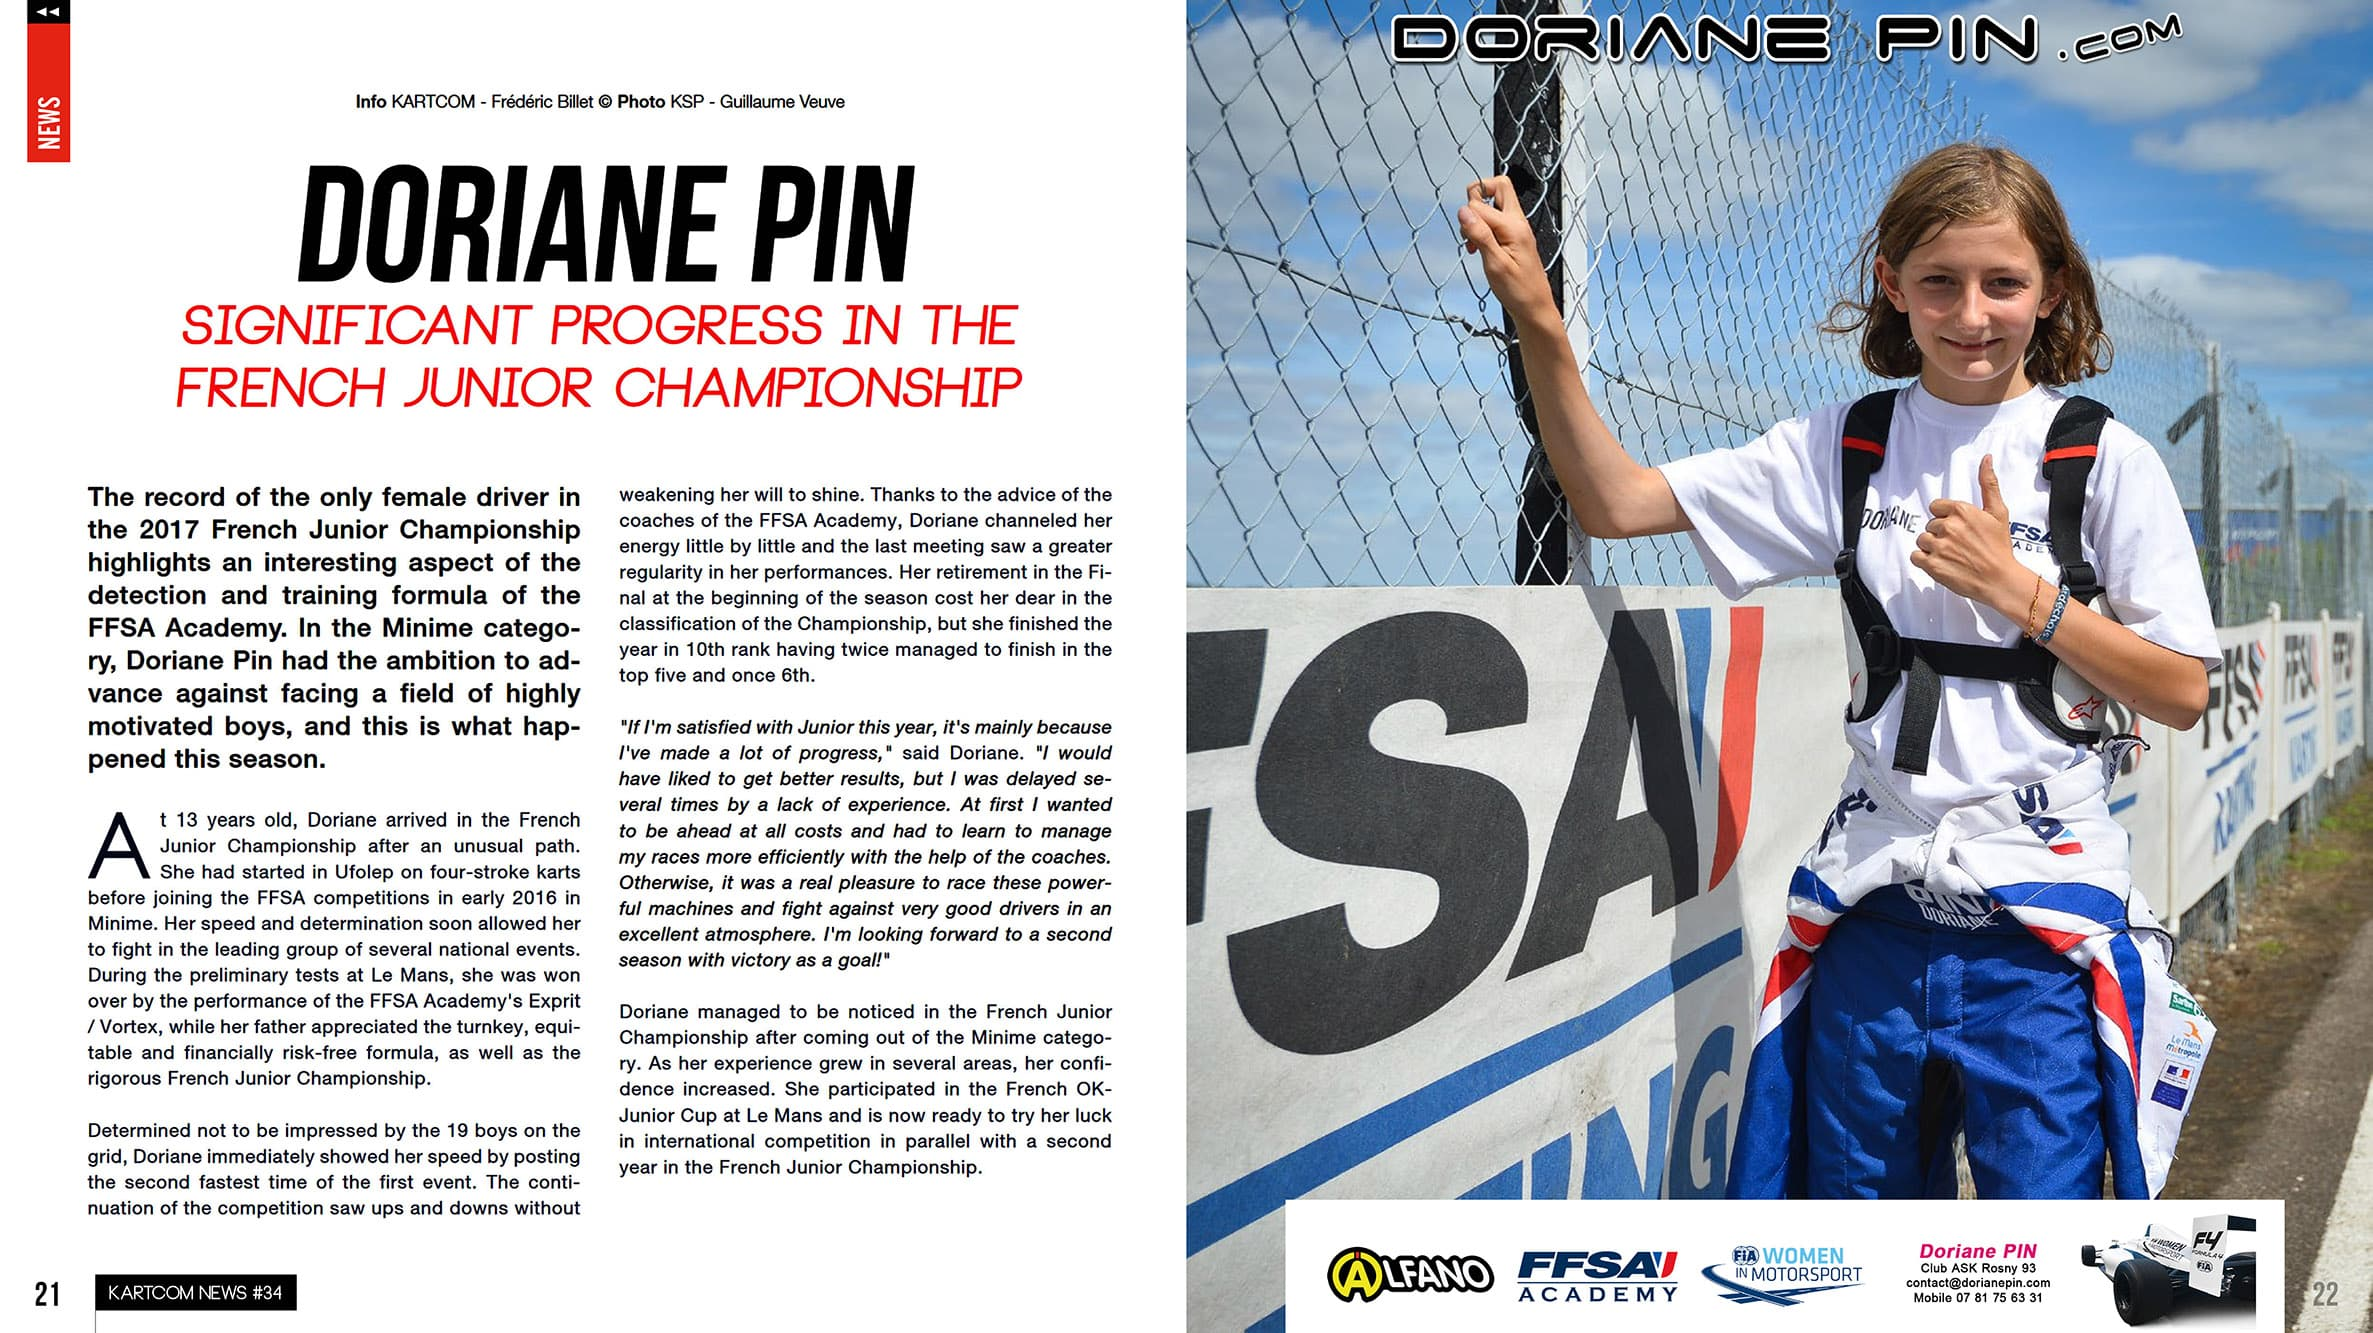 Doriane Pin, Significant progress in the French Junior Championship